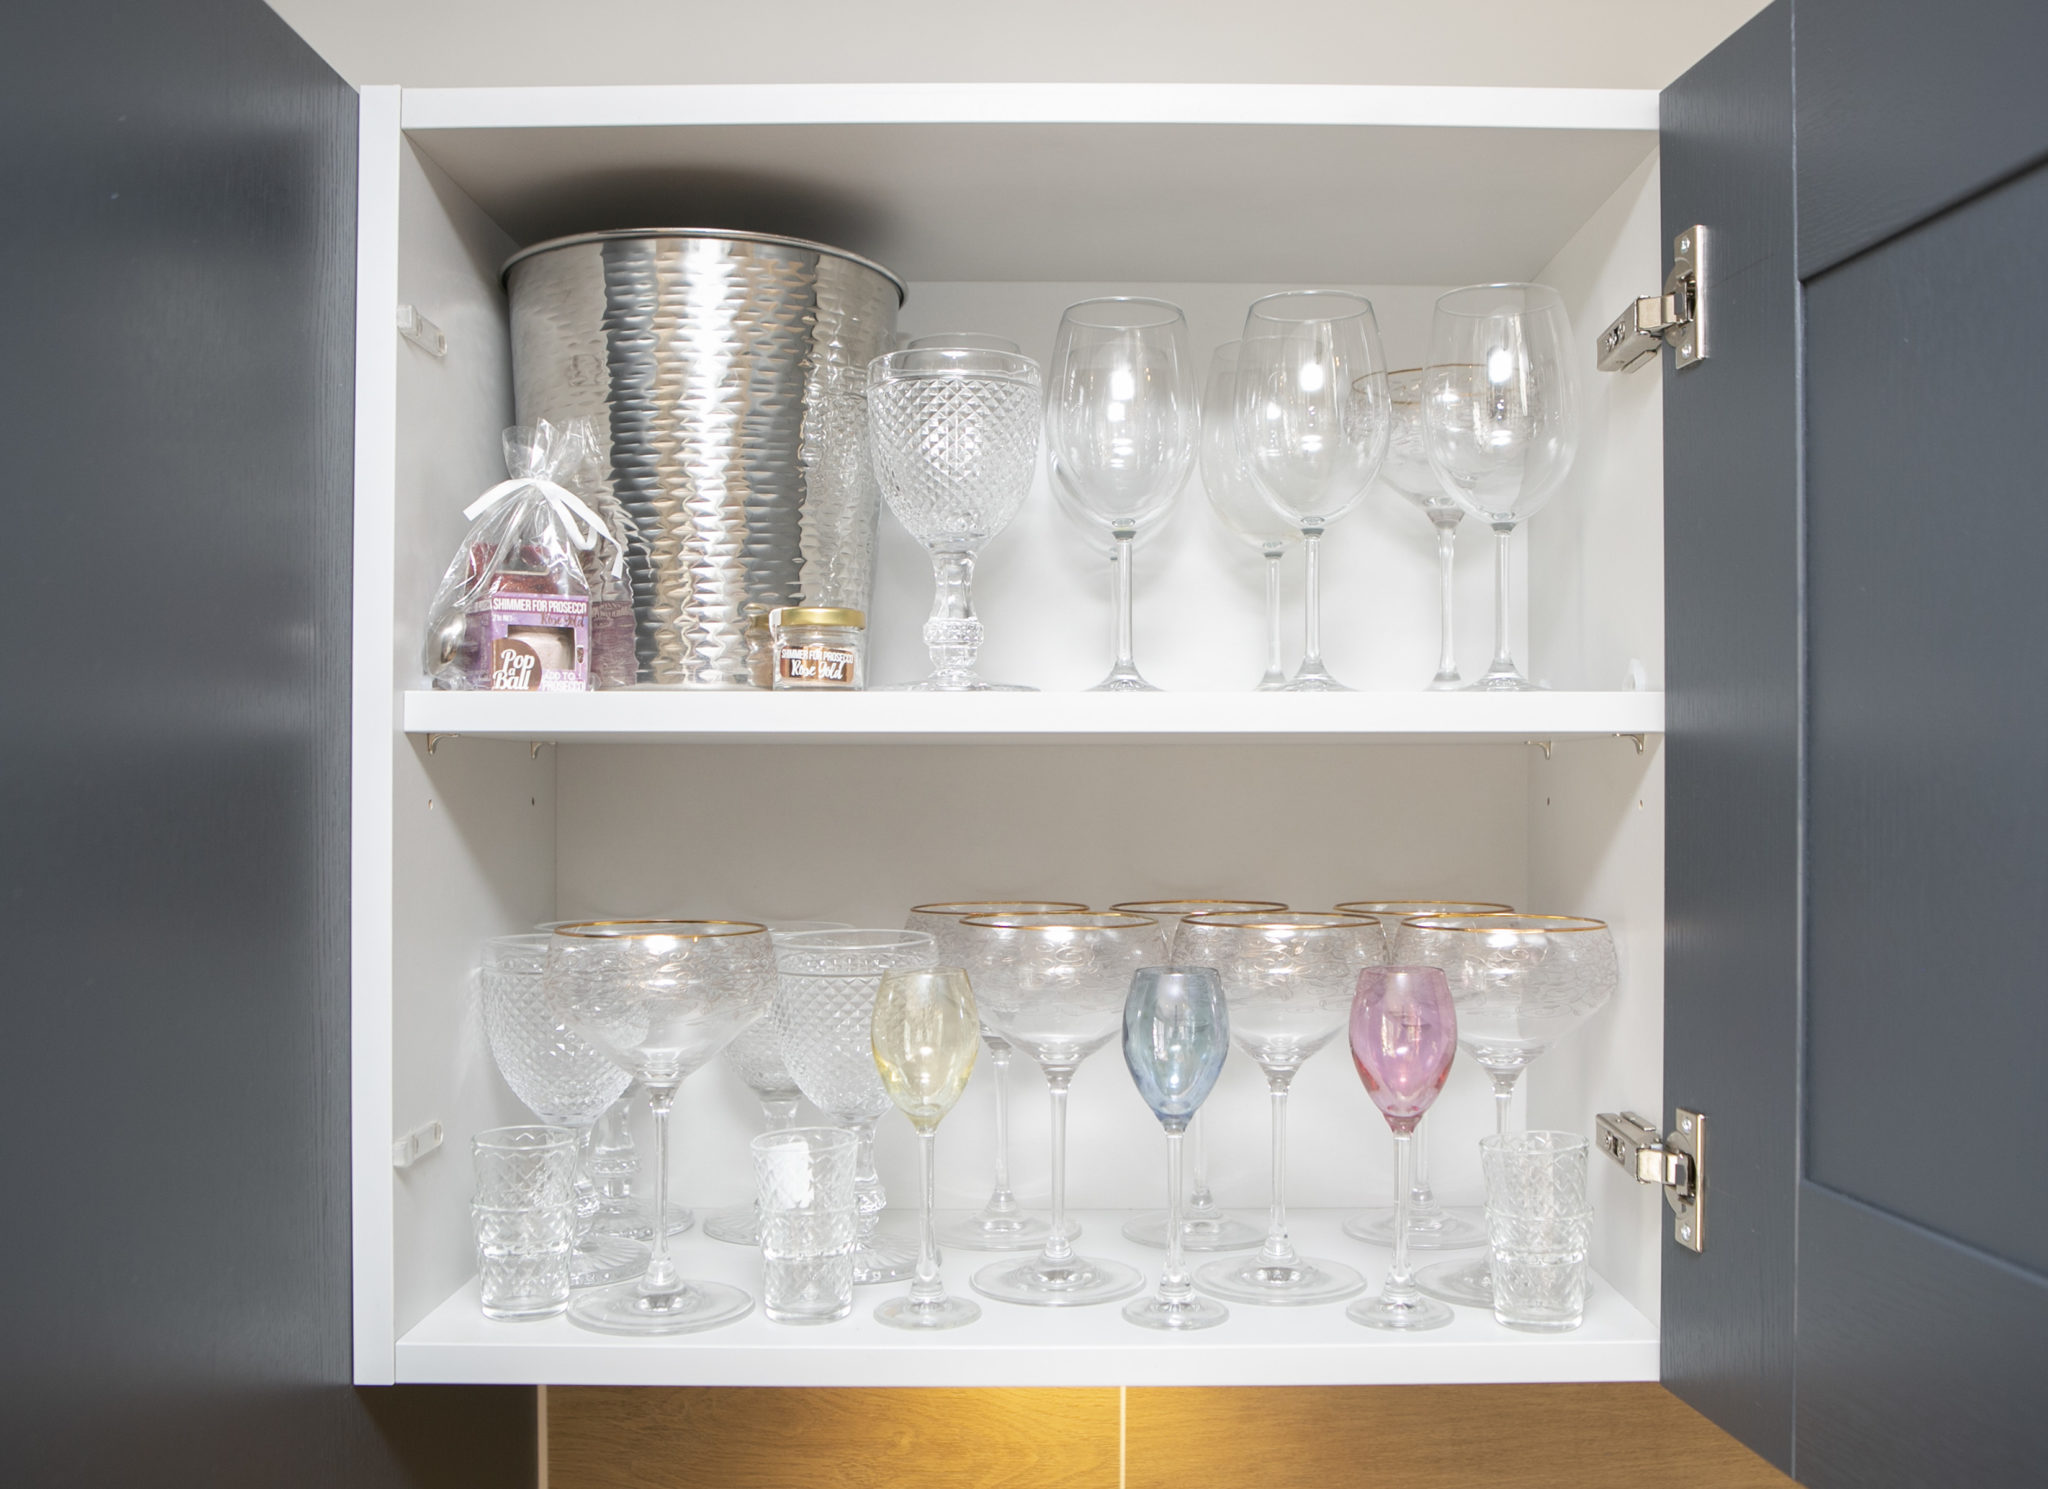 Kitchen shelf tidy and organised with glasses